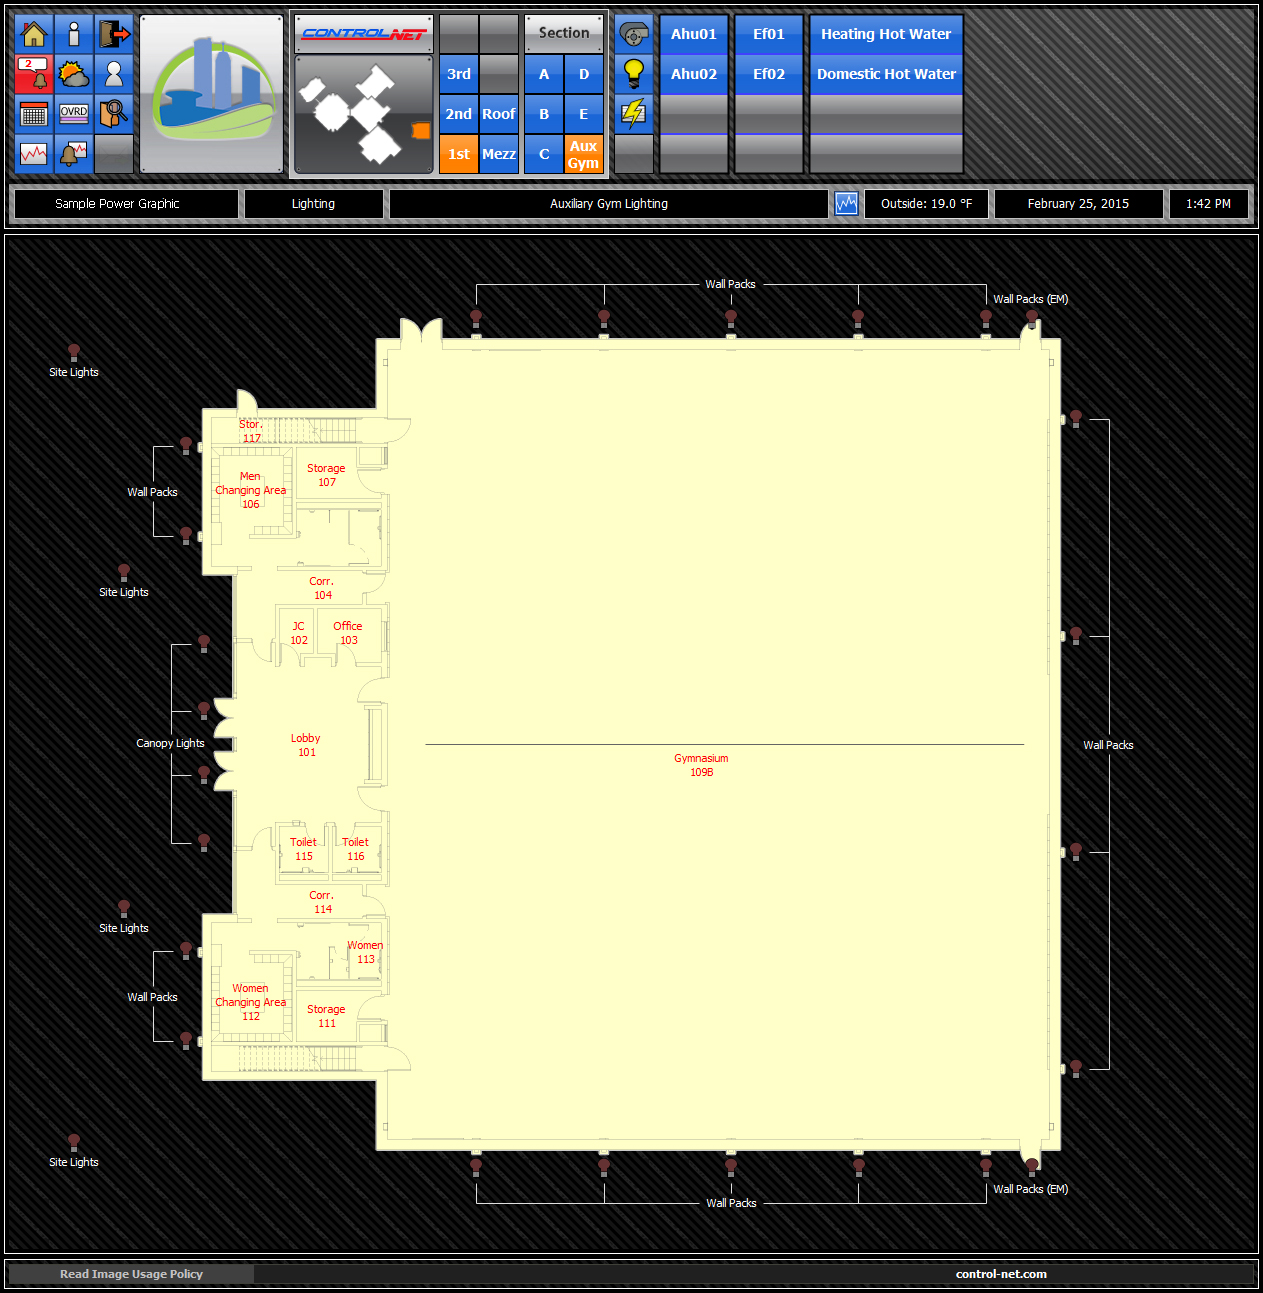 Lighting Floor Plan Graphic